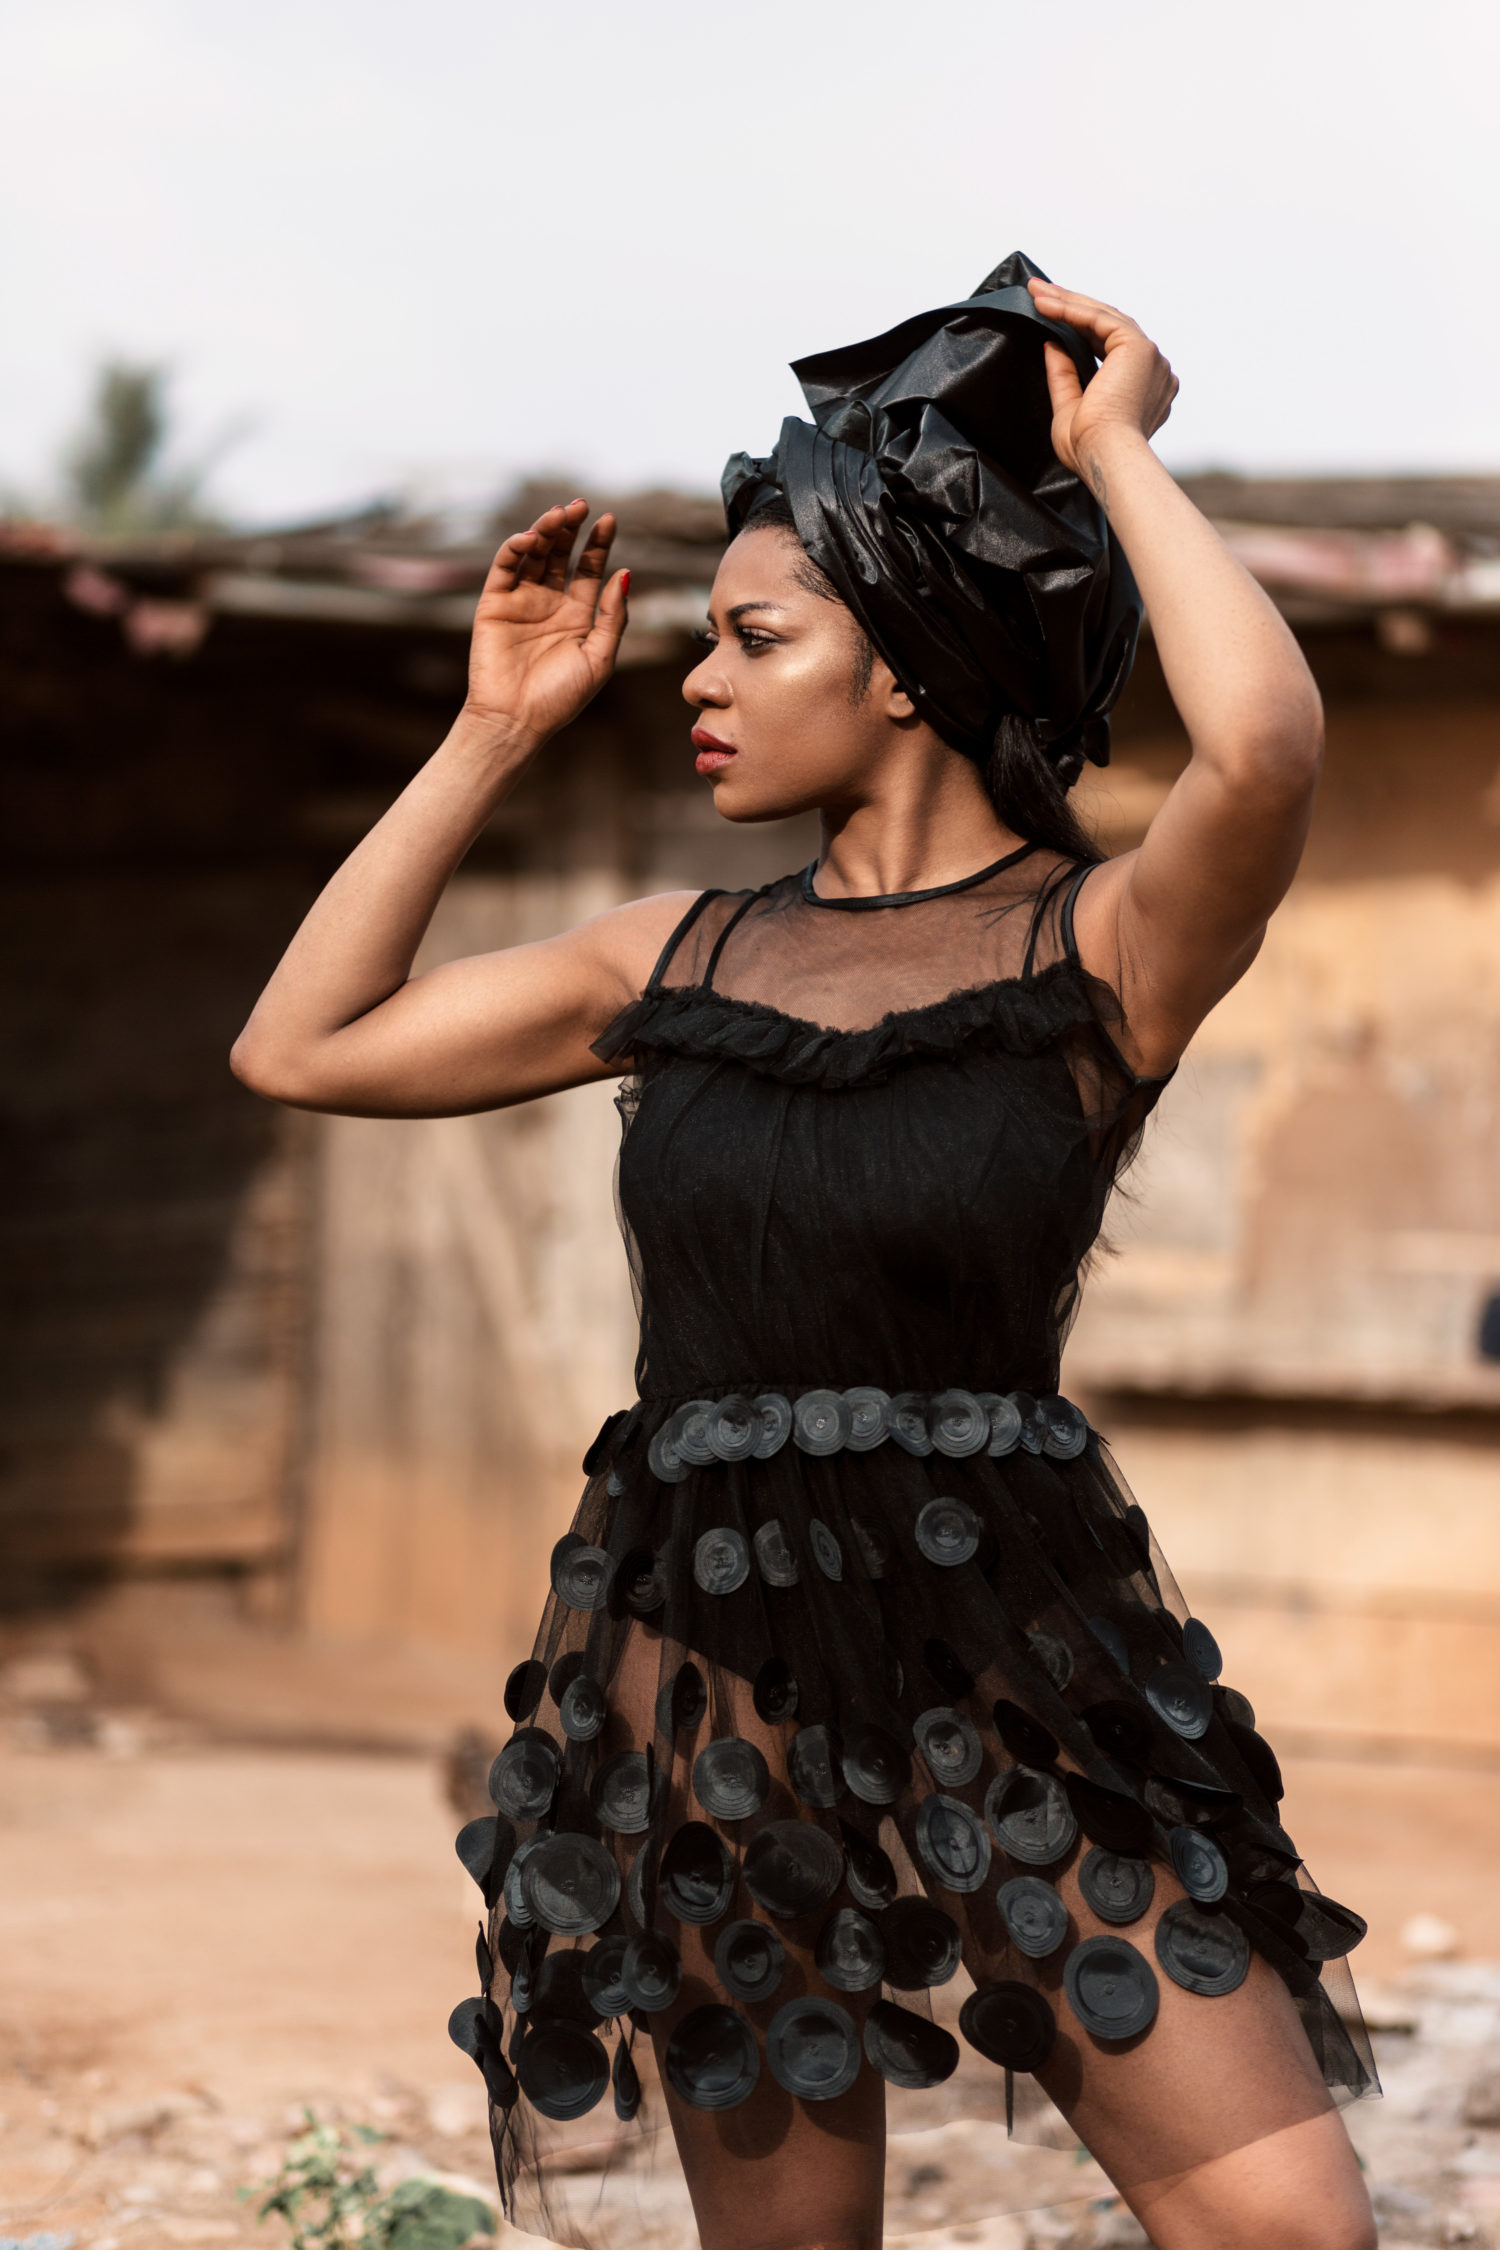 Vonne Couture Shares Their Fascinating Spring/Summer 19 Collection Titled 'Dudu'